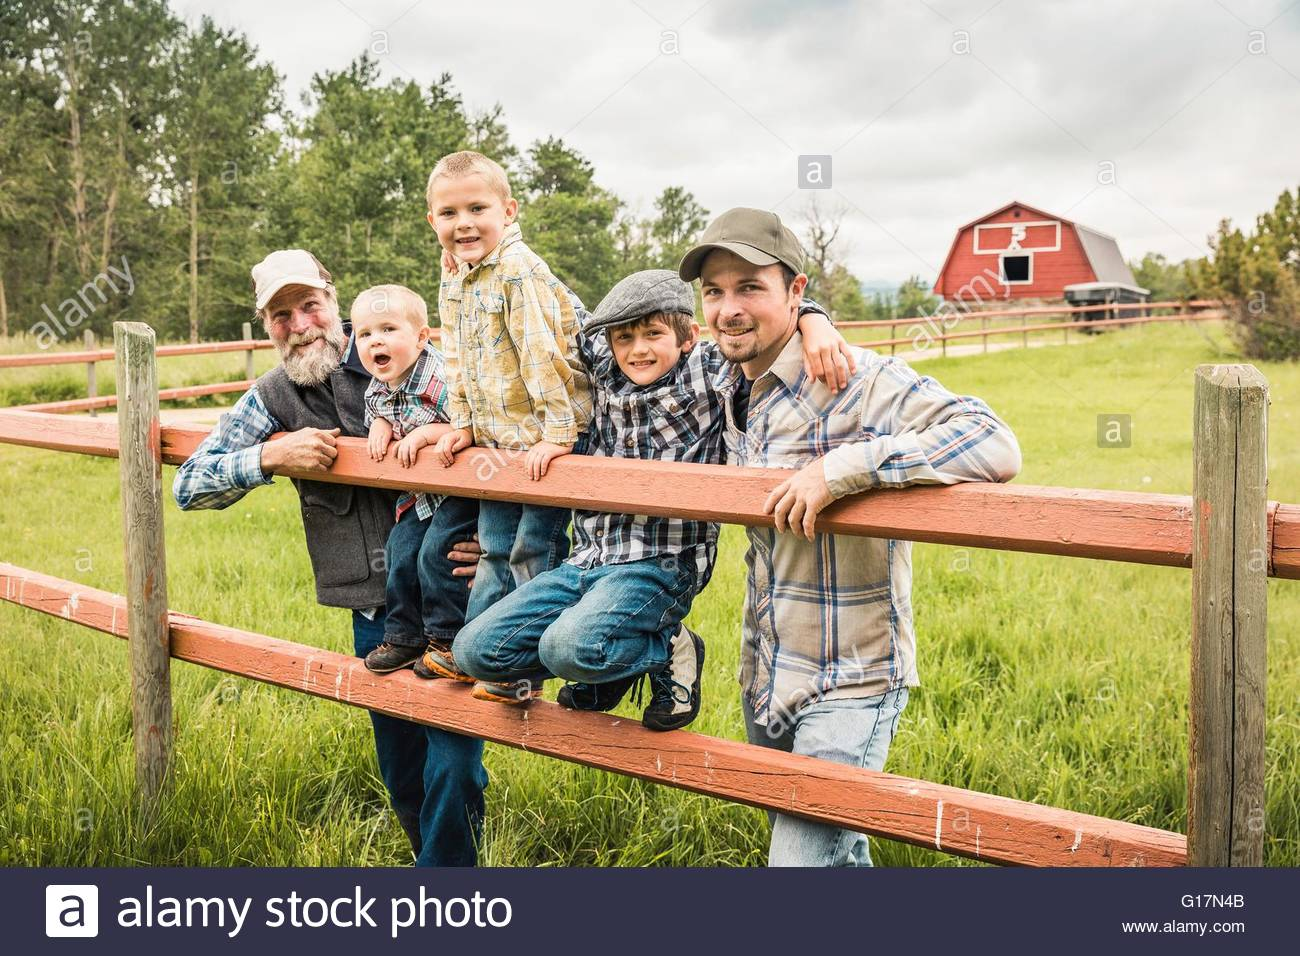 Multi generation family standing behind fence on farm looking at camera smiling Photo Stock